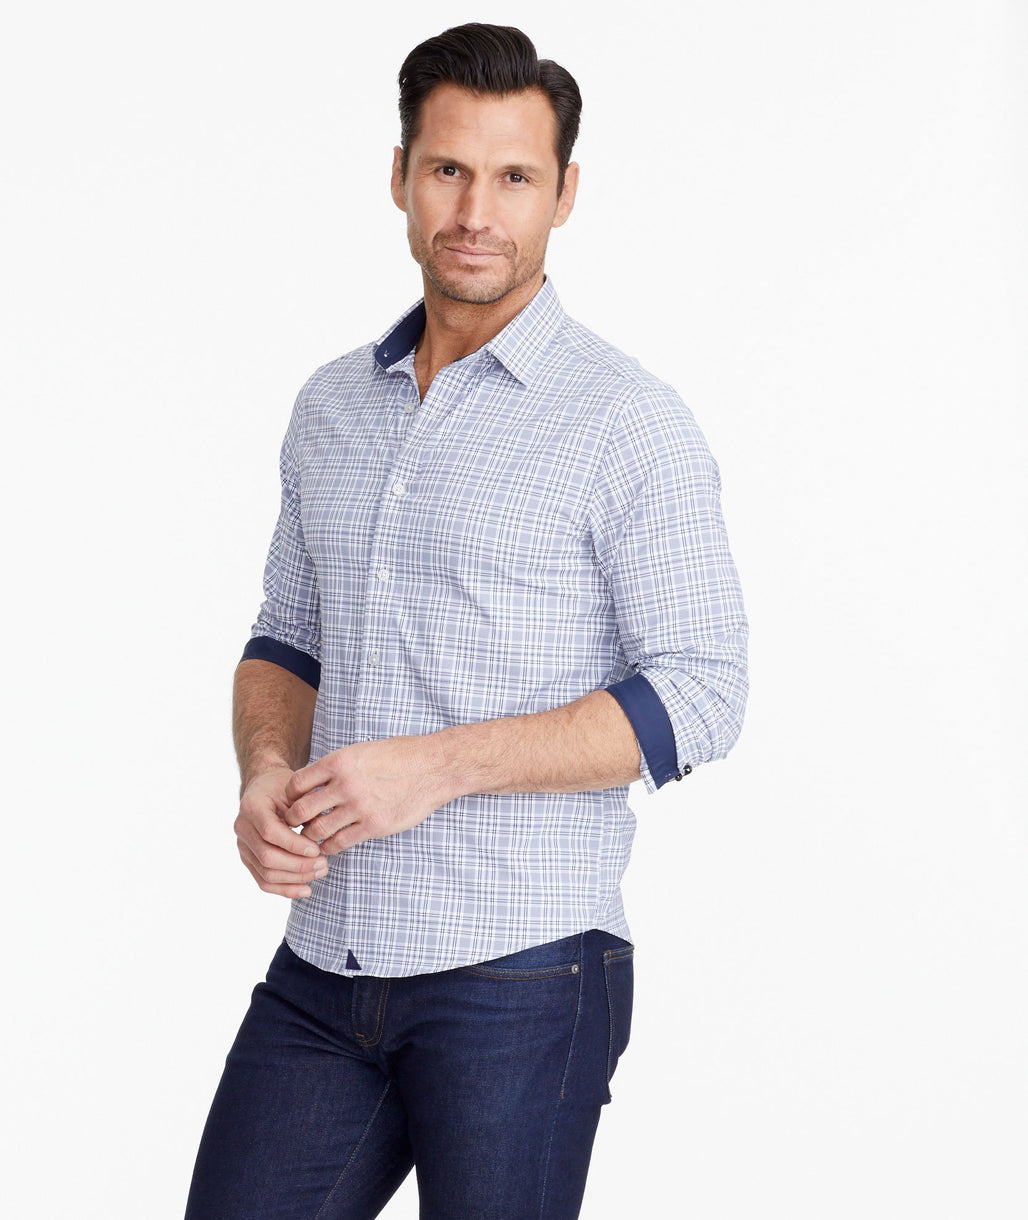 A model wearing a Navy Wrinkle-Free Performance Armand Shirt